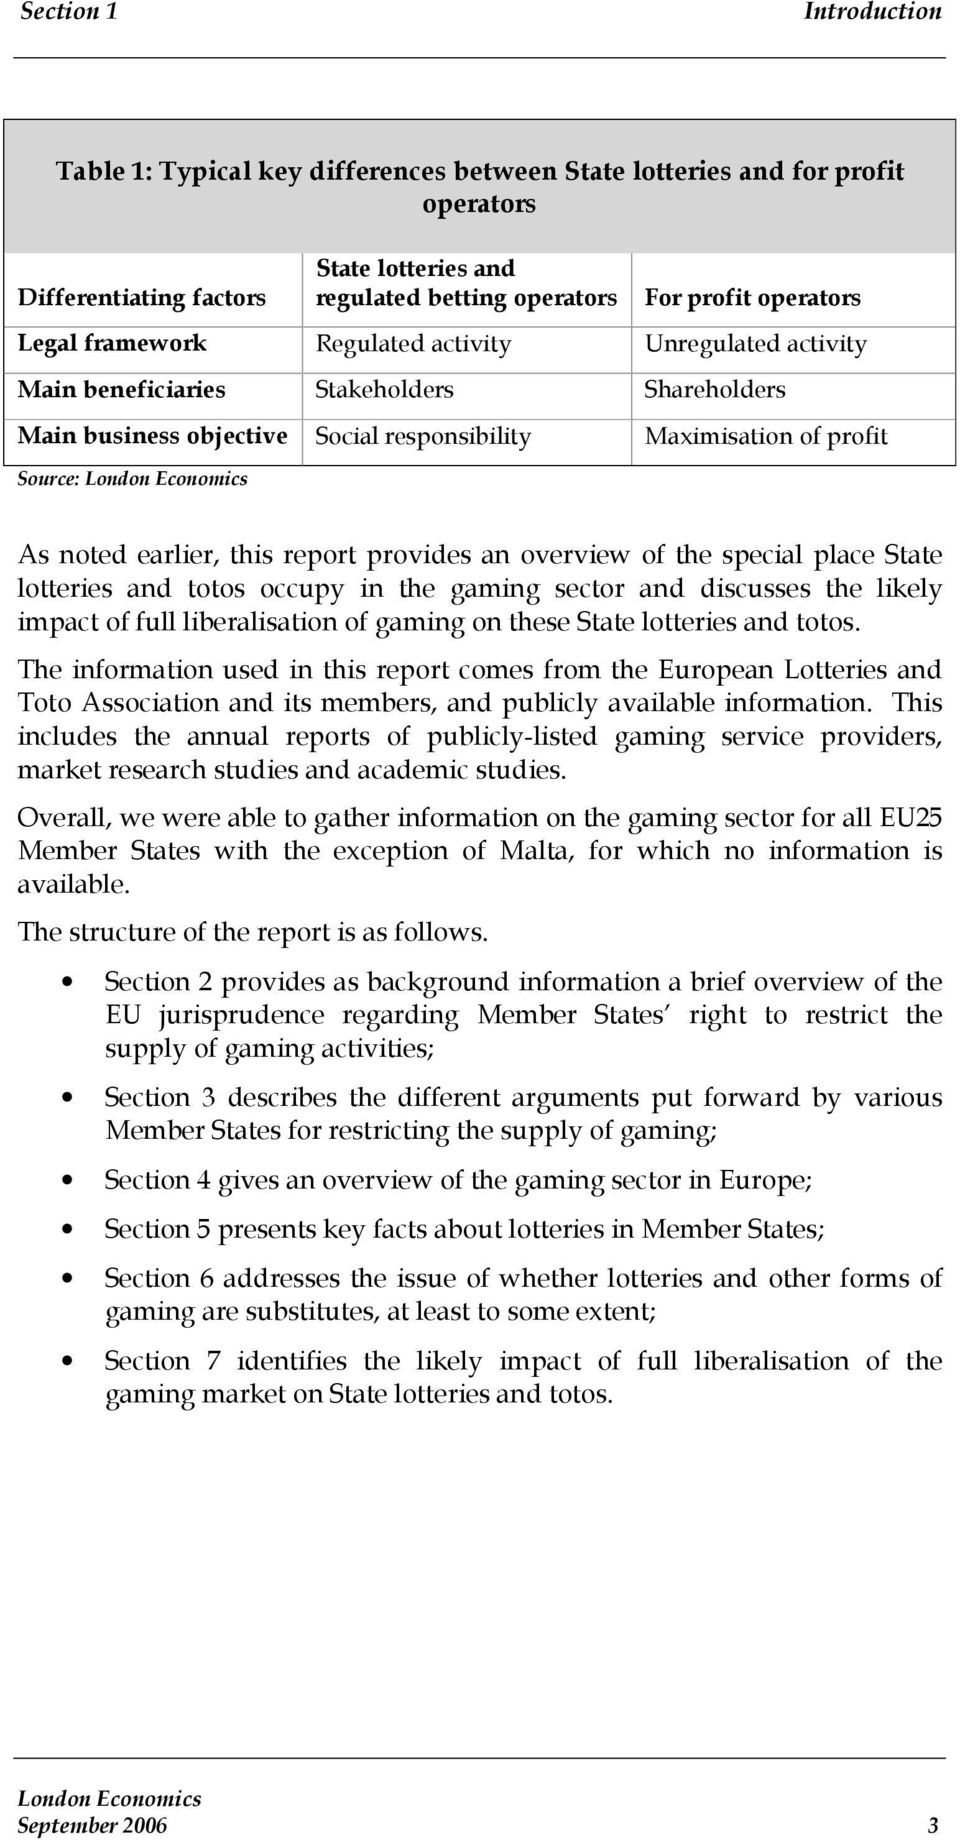 this report provides an overview of the special place State lotteries and totos occupy in the gaming sector and discusses the likely impact of full liberalisation of gaming on these State lotteries